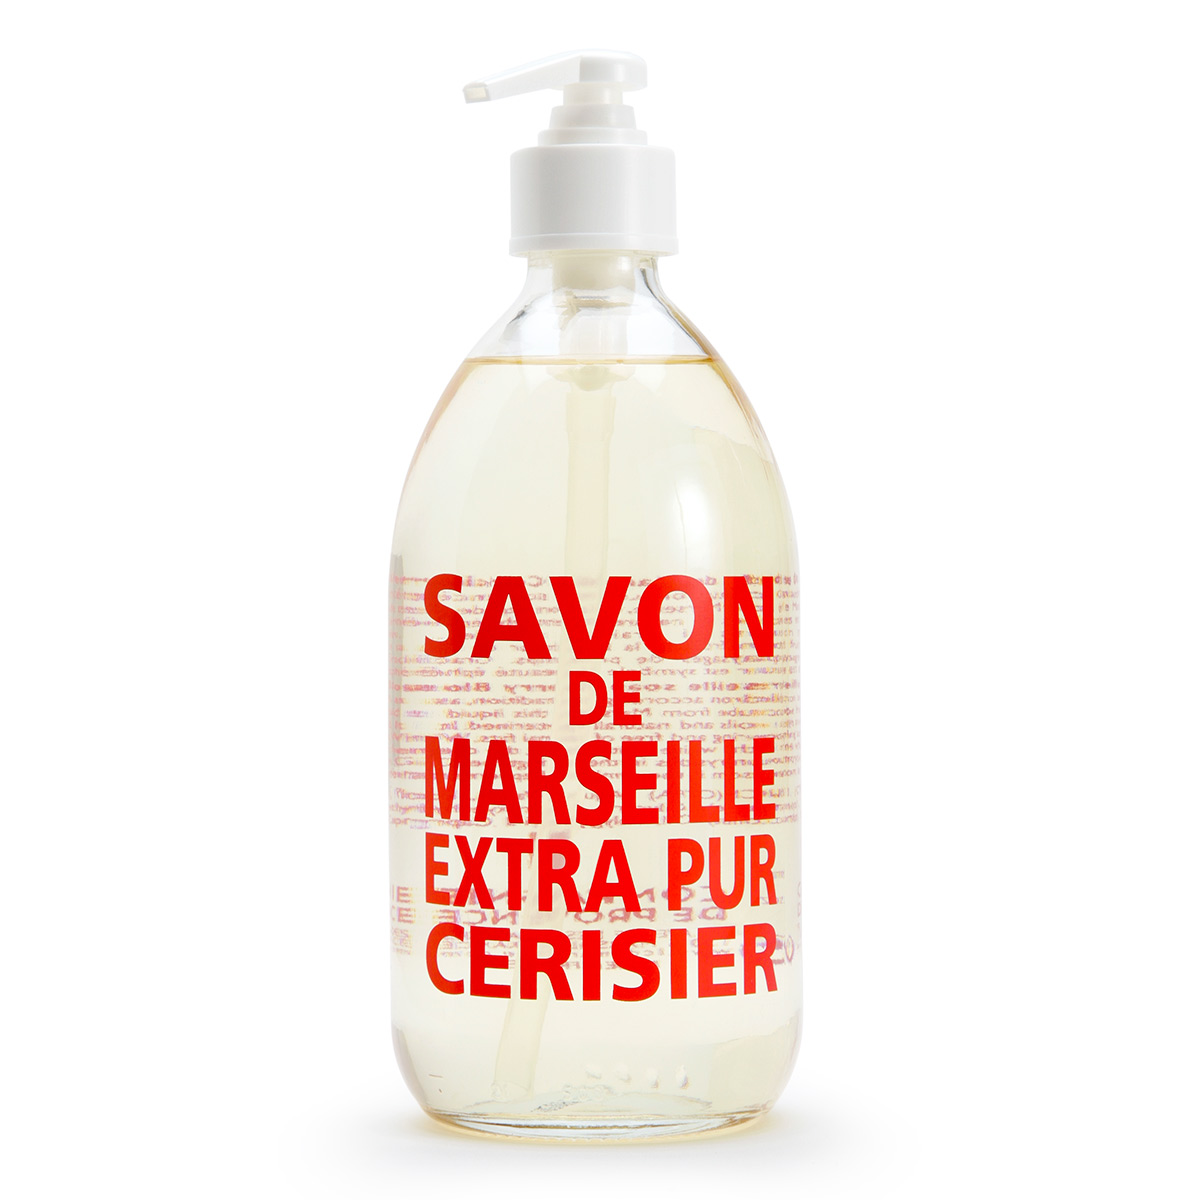 savon de marseille extra pur liquid soap 16 9 oz glass bottle natural bath spa at vickerey. Black Bedroom Furniture Sets. Home Design Ideas